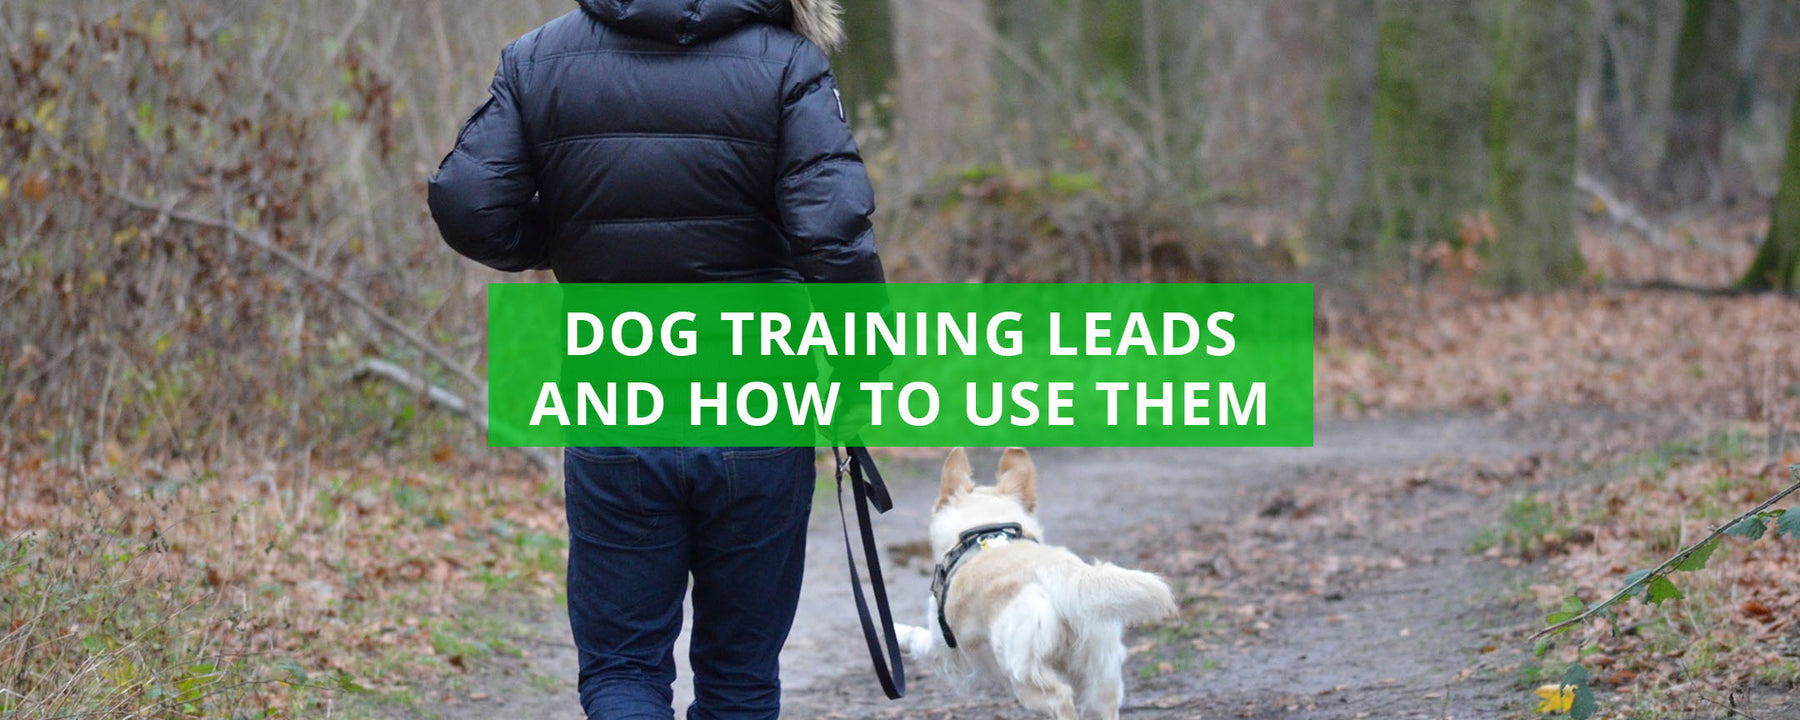 Dog Training Leads And How To Use Them